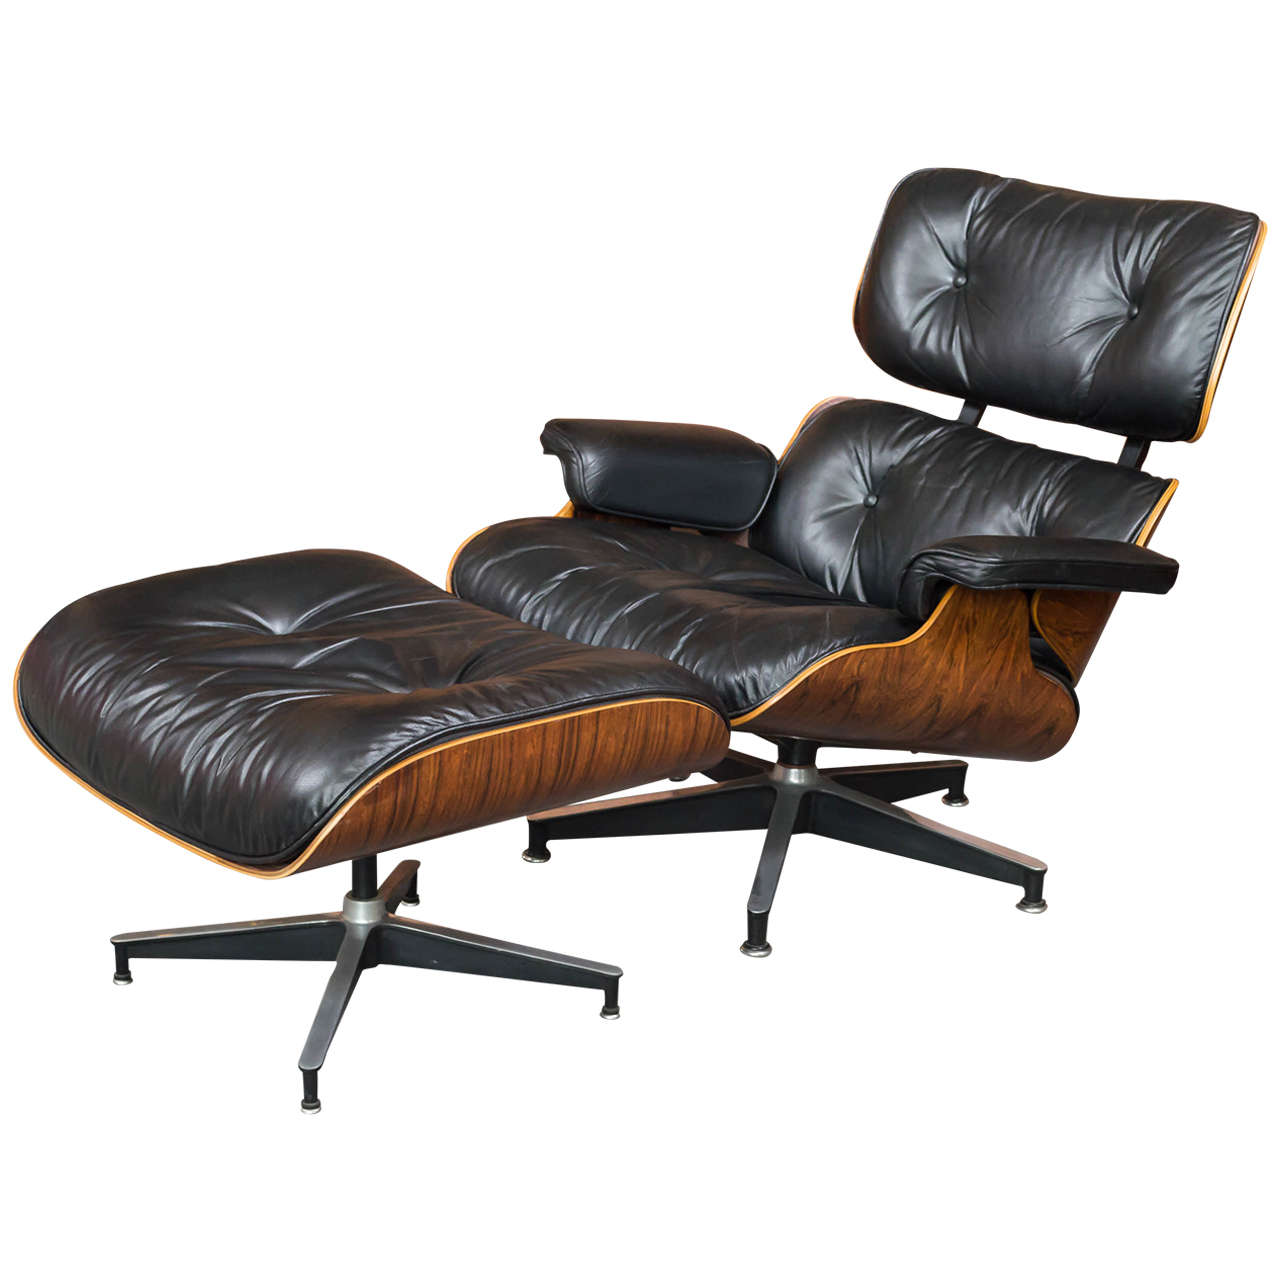 eames rosewood lounge chair 670 and ottoman 671 for herman miller at 1stdibs. Black Bedroom Furniture Sets. Home Design Ideas